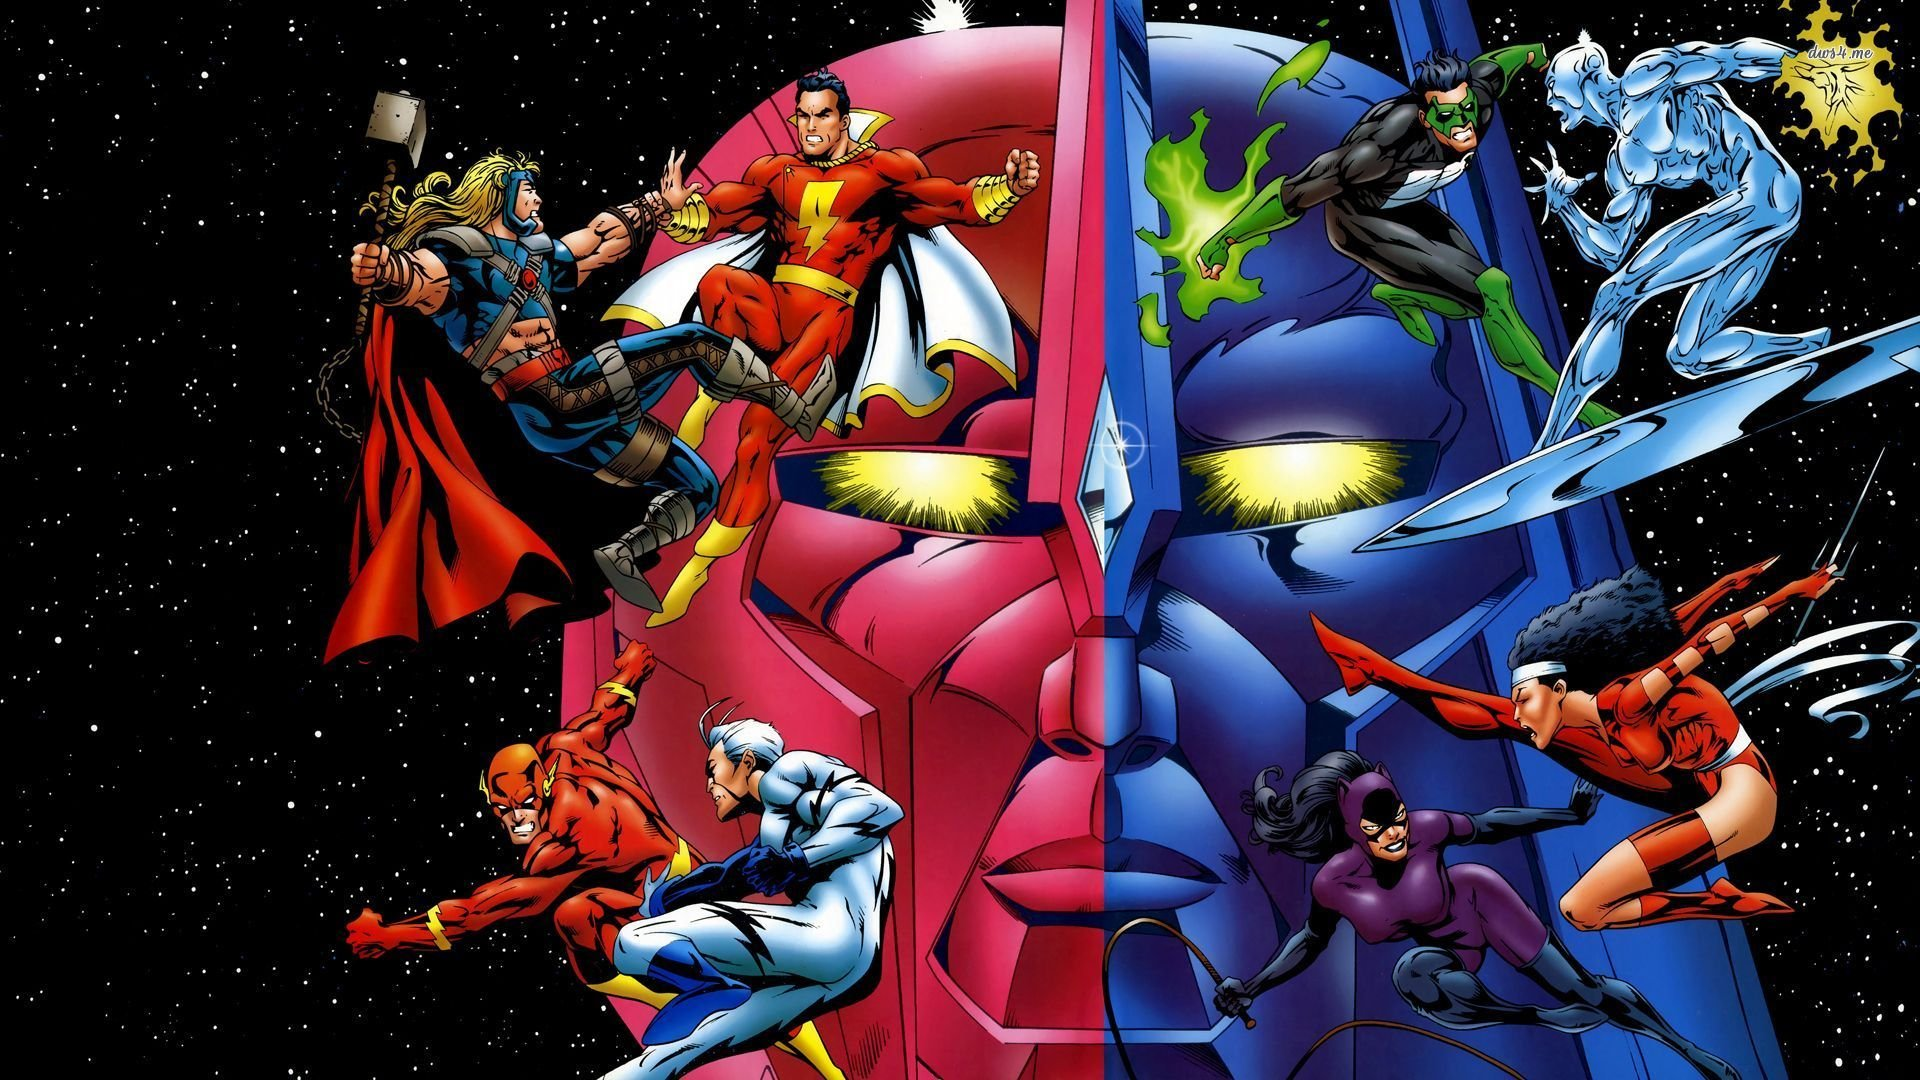 DC Comics vs Marvel superheroes wallpaper 1280x800 DC Comics vs Marvel 1920x1080